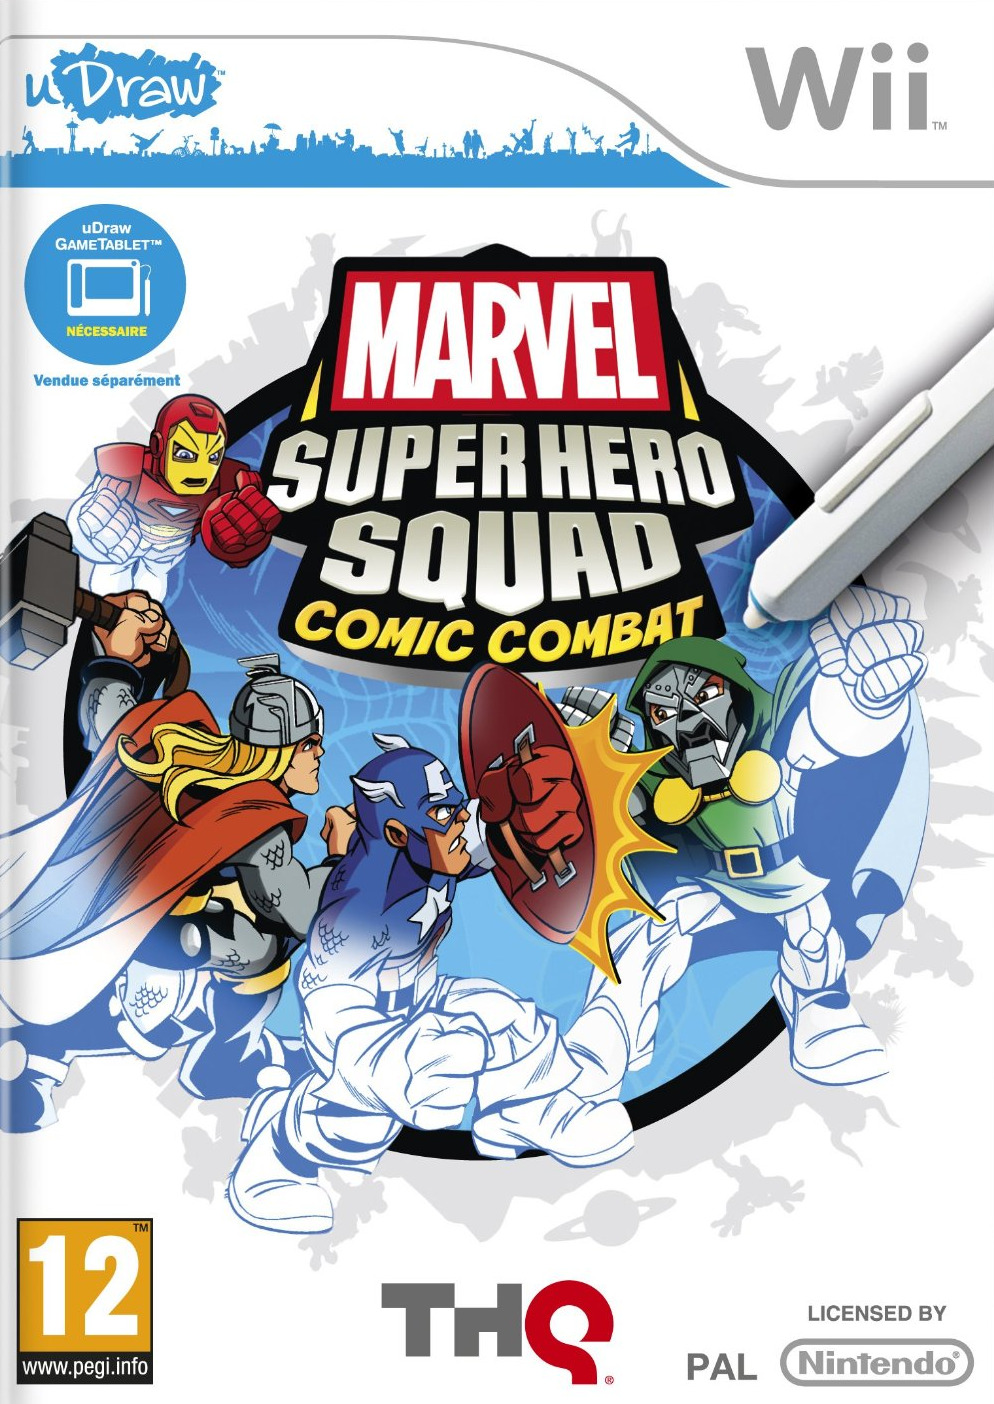 Marvel Super Hero Squad : Comic Combat [Wi] [FS][WU]